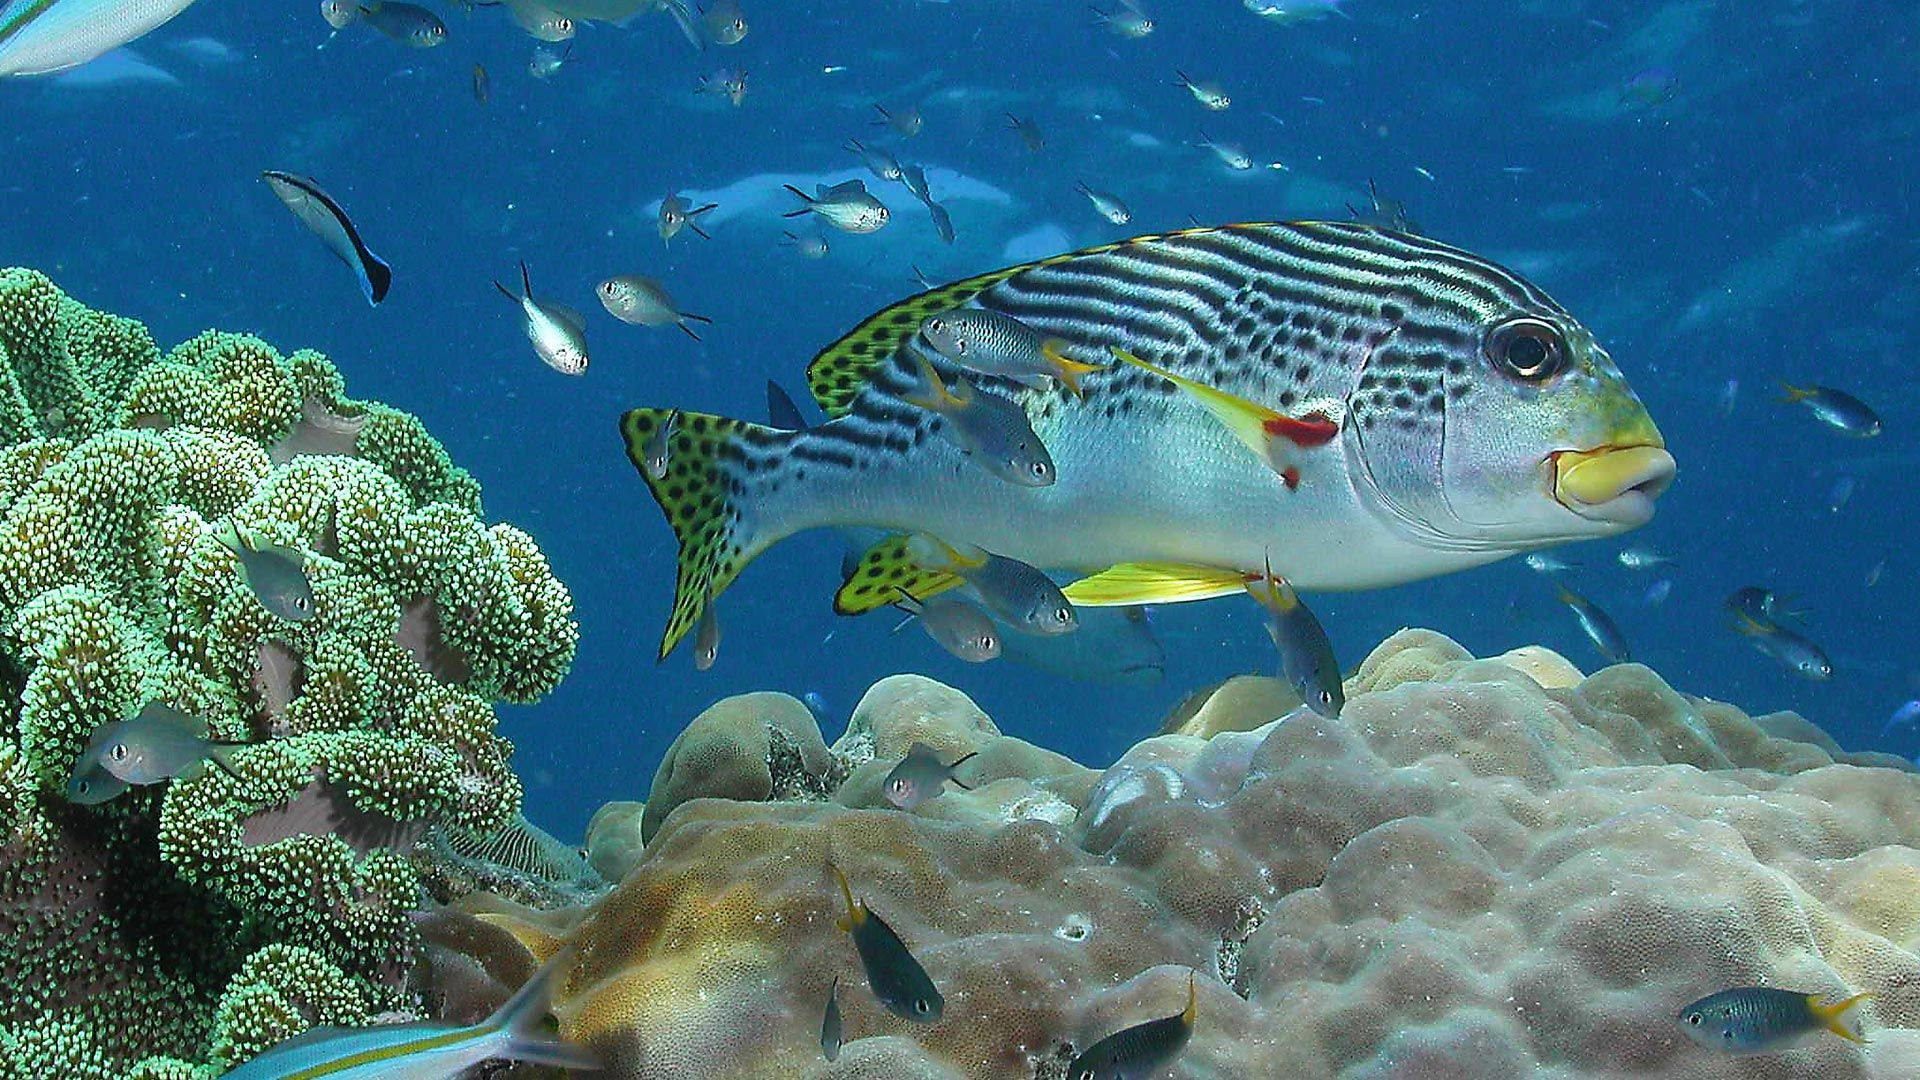 Sweet Lips Great Barrier Reef (With images) Fish pet